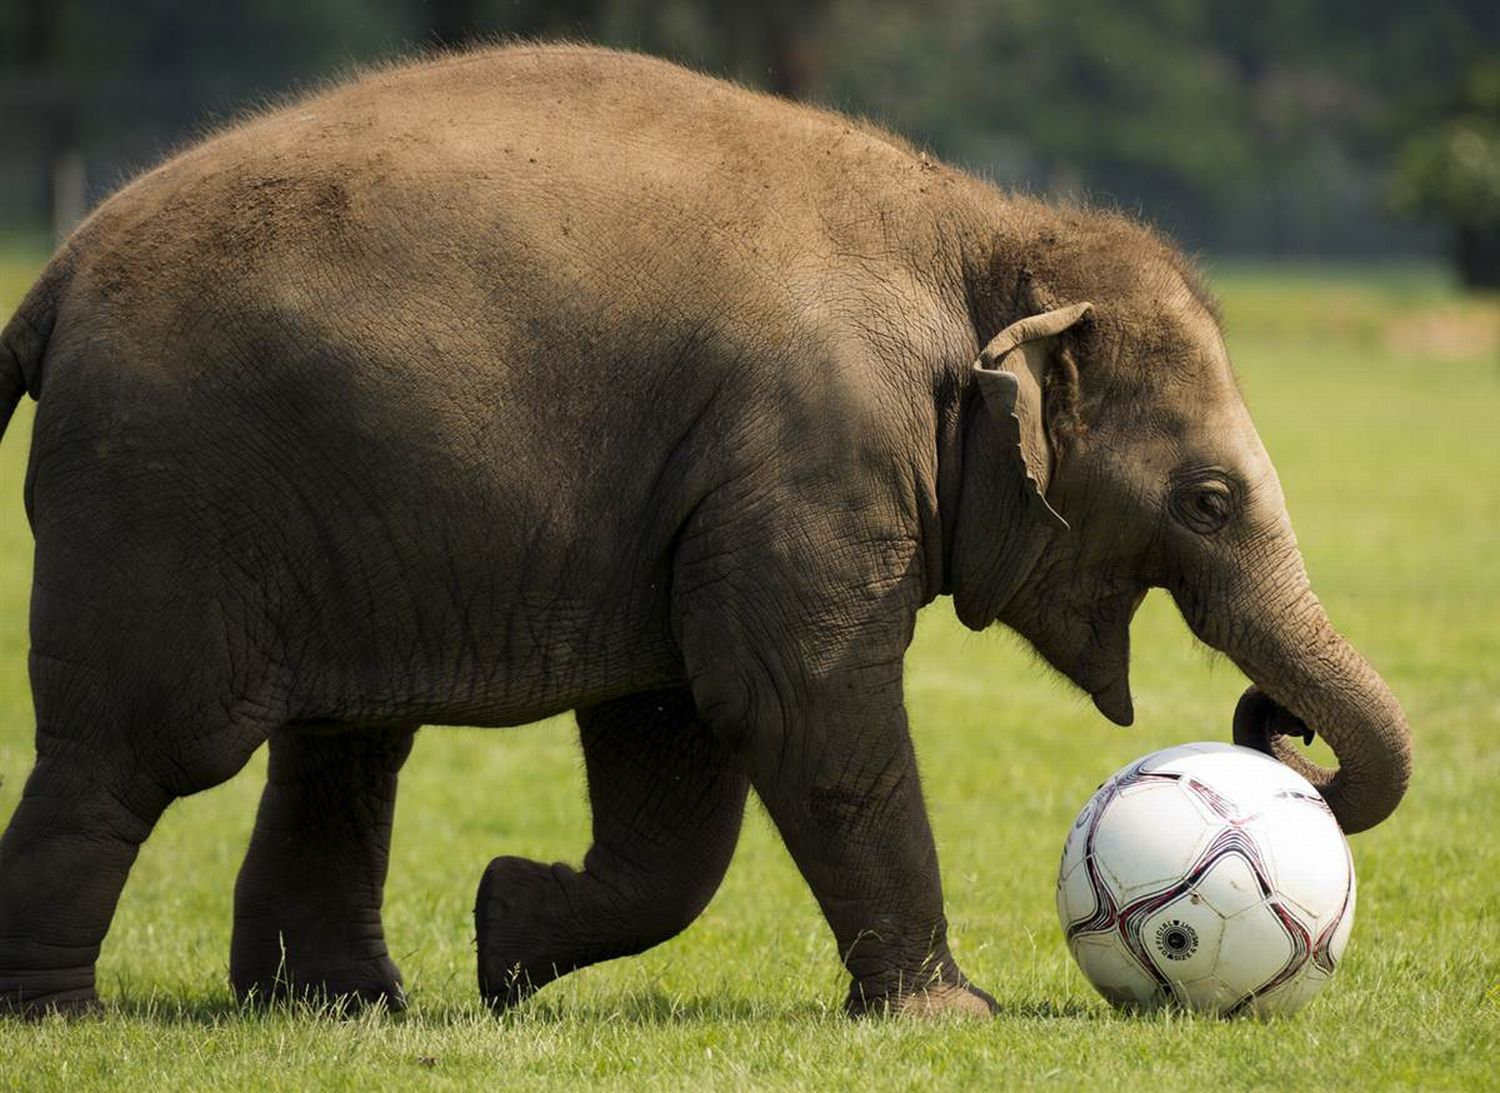 ... funny animals, euro 2012, animals play football, animals play soccer